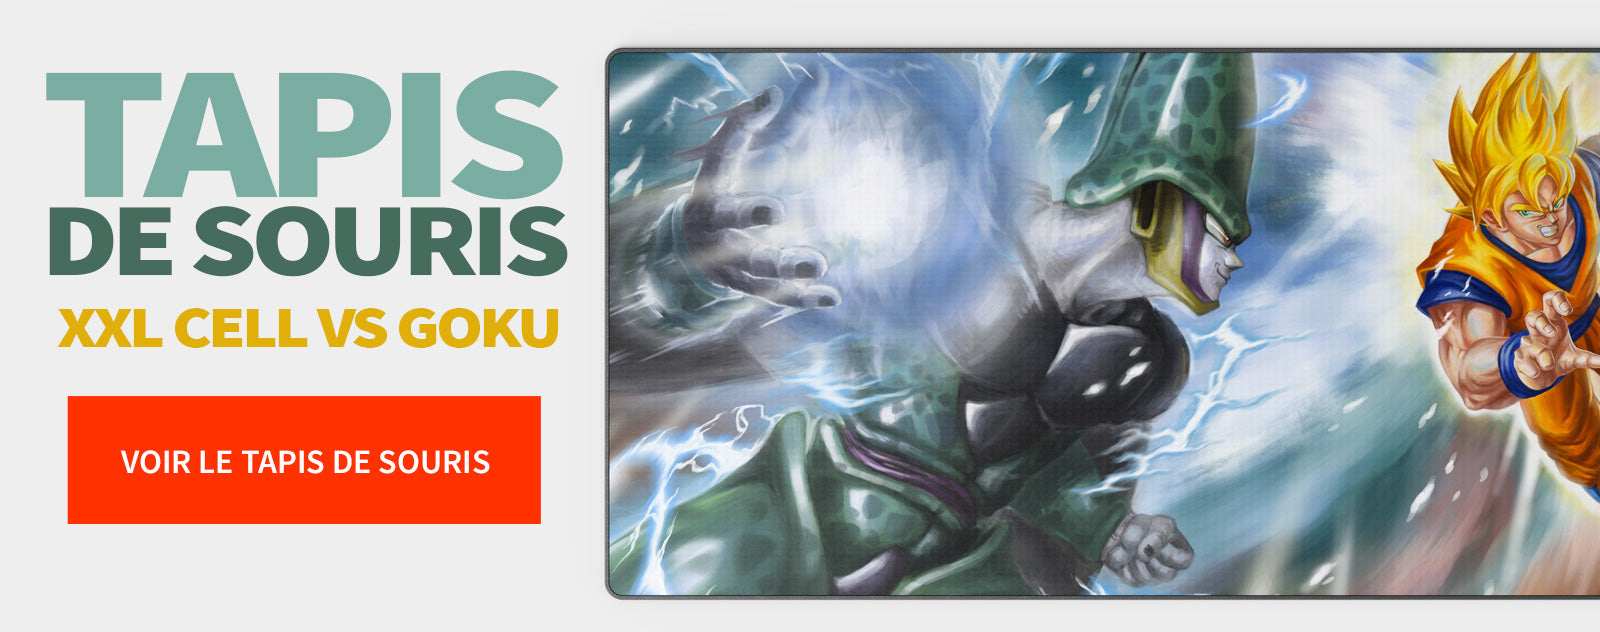 Tapis de Souris XXL Cell vs Goku